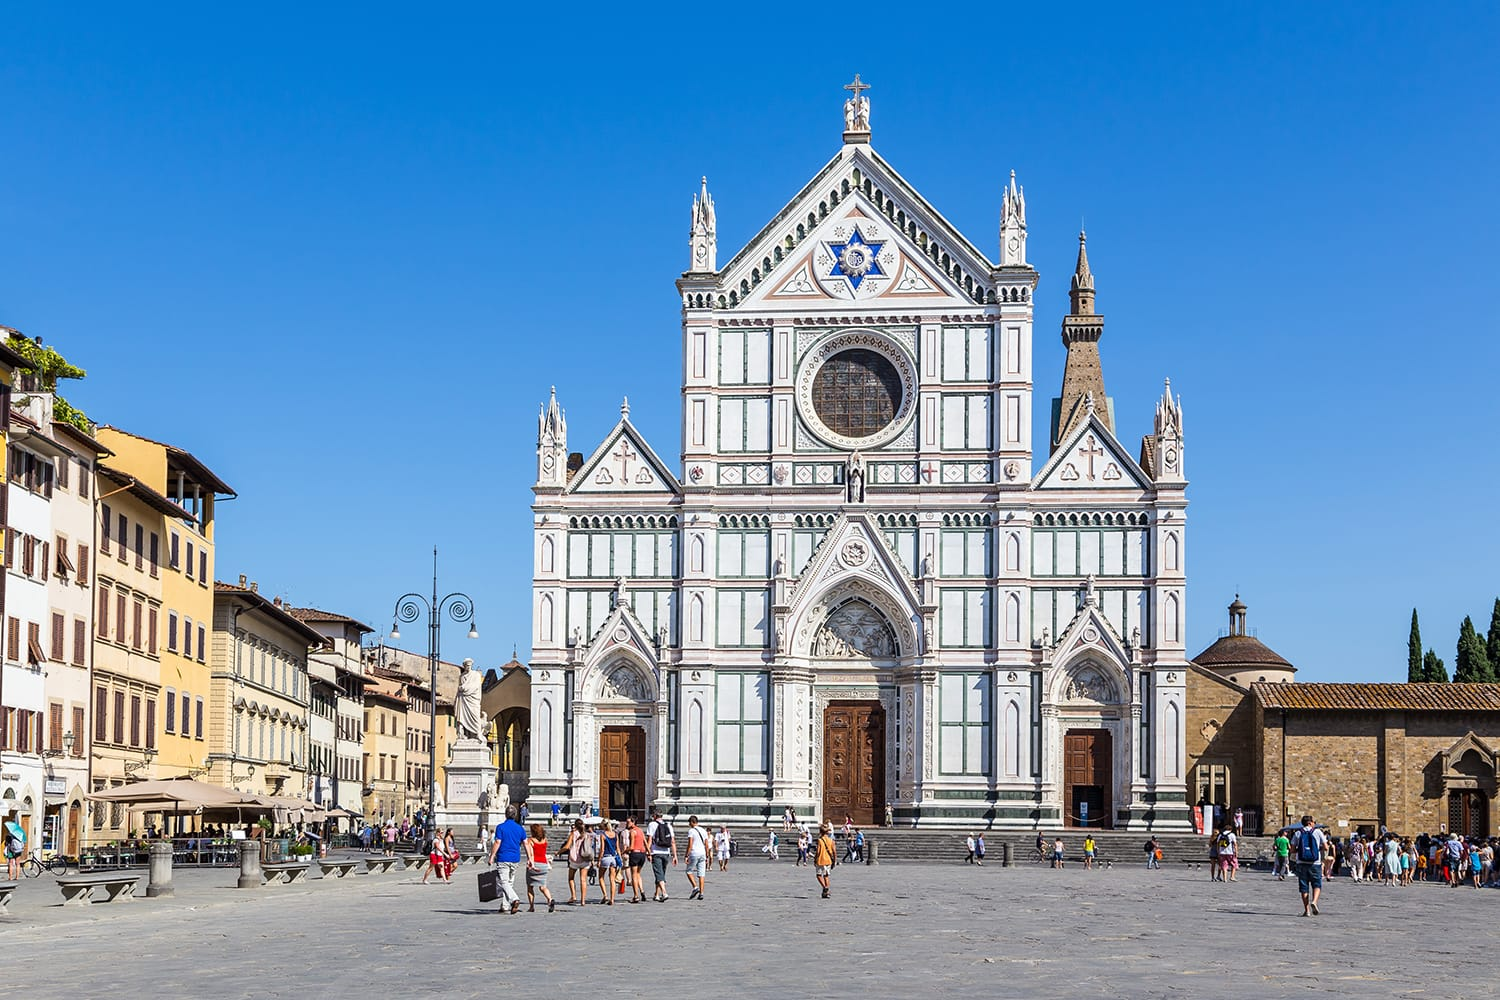 Santa Croce church in Florence in (Firenze), Tuscany, Italy